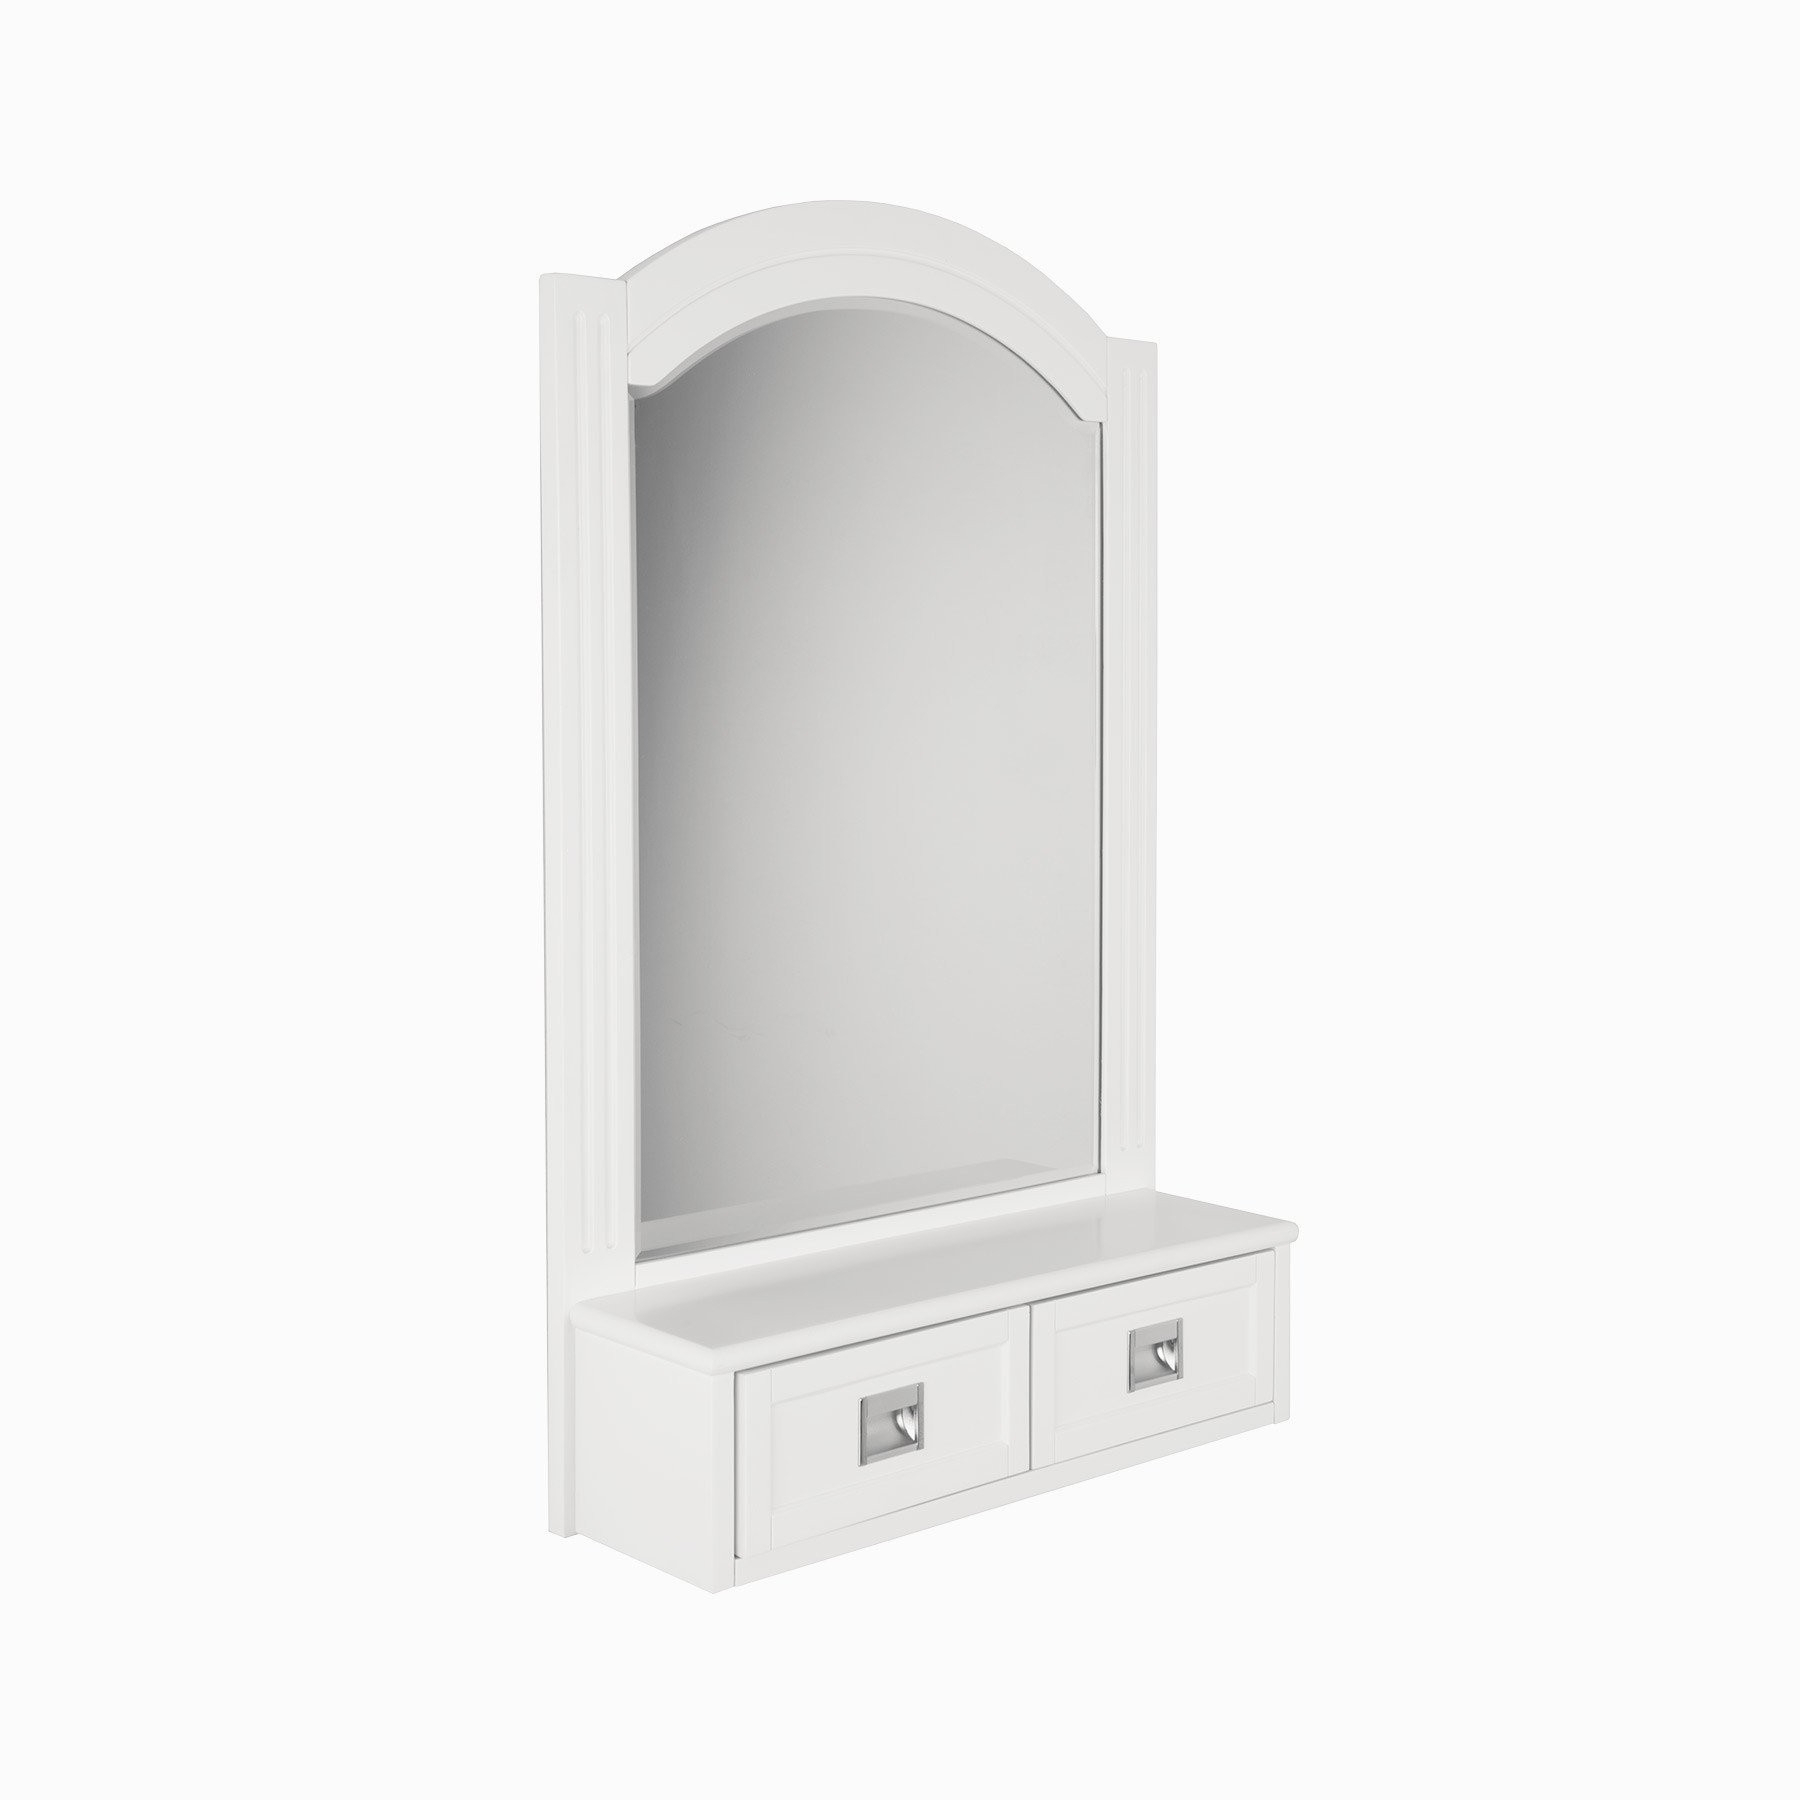 """Widely Used Burton 24"""" W X 38"""" H Framed Wall Mirror In White Inside White Frame Wall Mirrors (View 13 of 20)"""